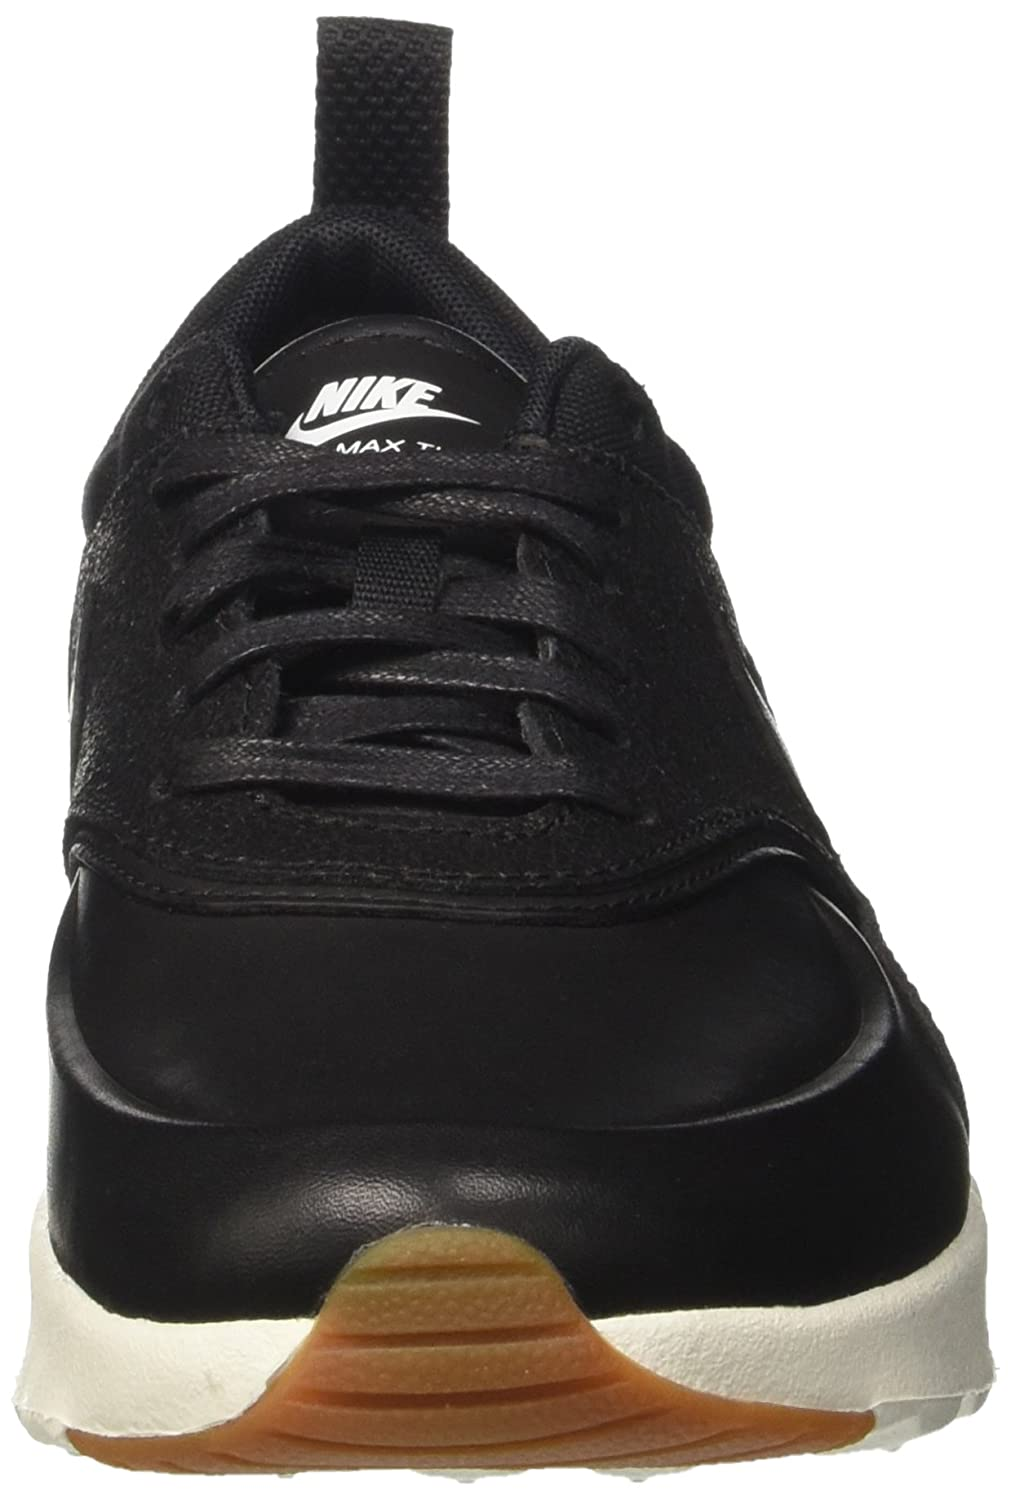 best loved ecfb3 5b686 Nike Women s WMNS Air Max Thea PRM Low-Top Sneakers  Amazon.co.uk  Shoes    Bags